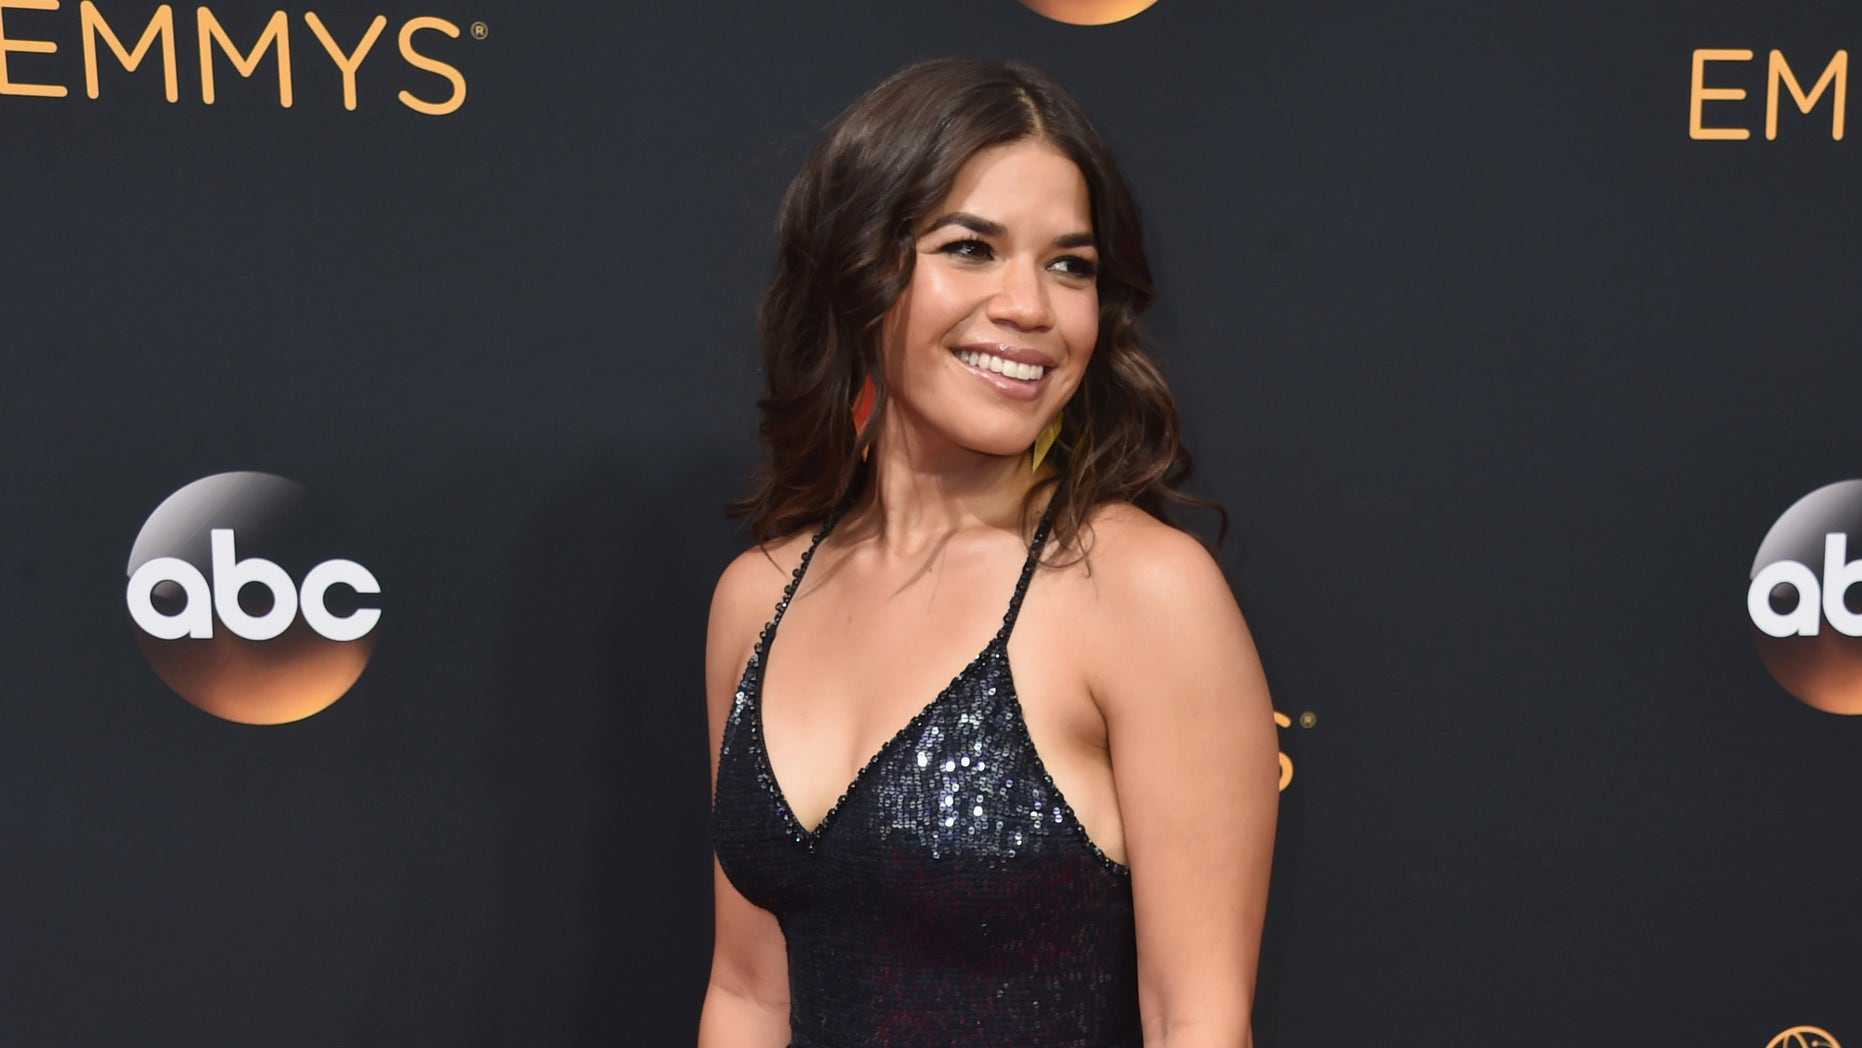 America Ferrera at the Emmy Awards on September 18, 2016 in Los Angeles, California.